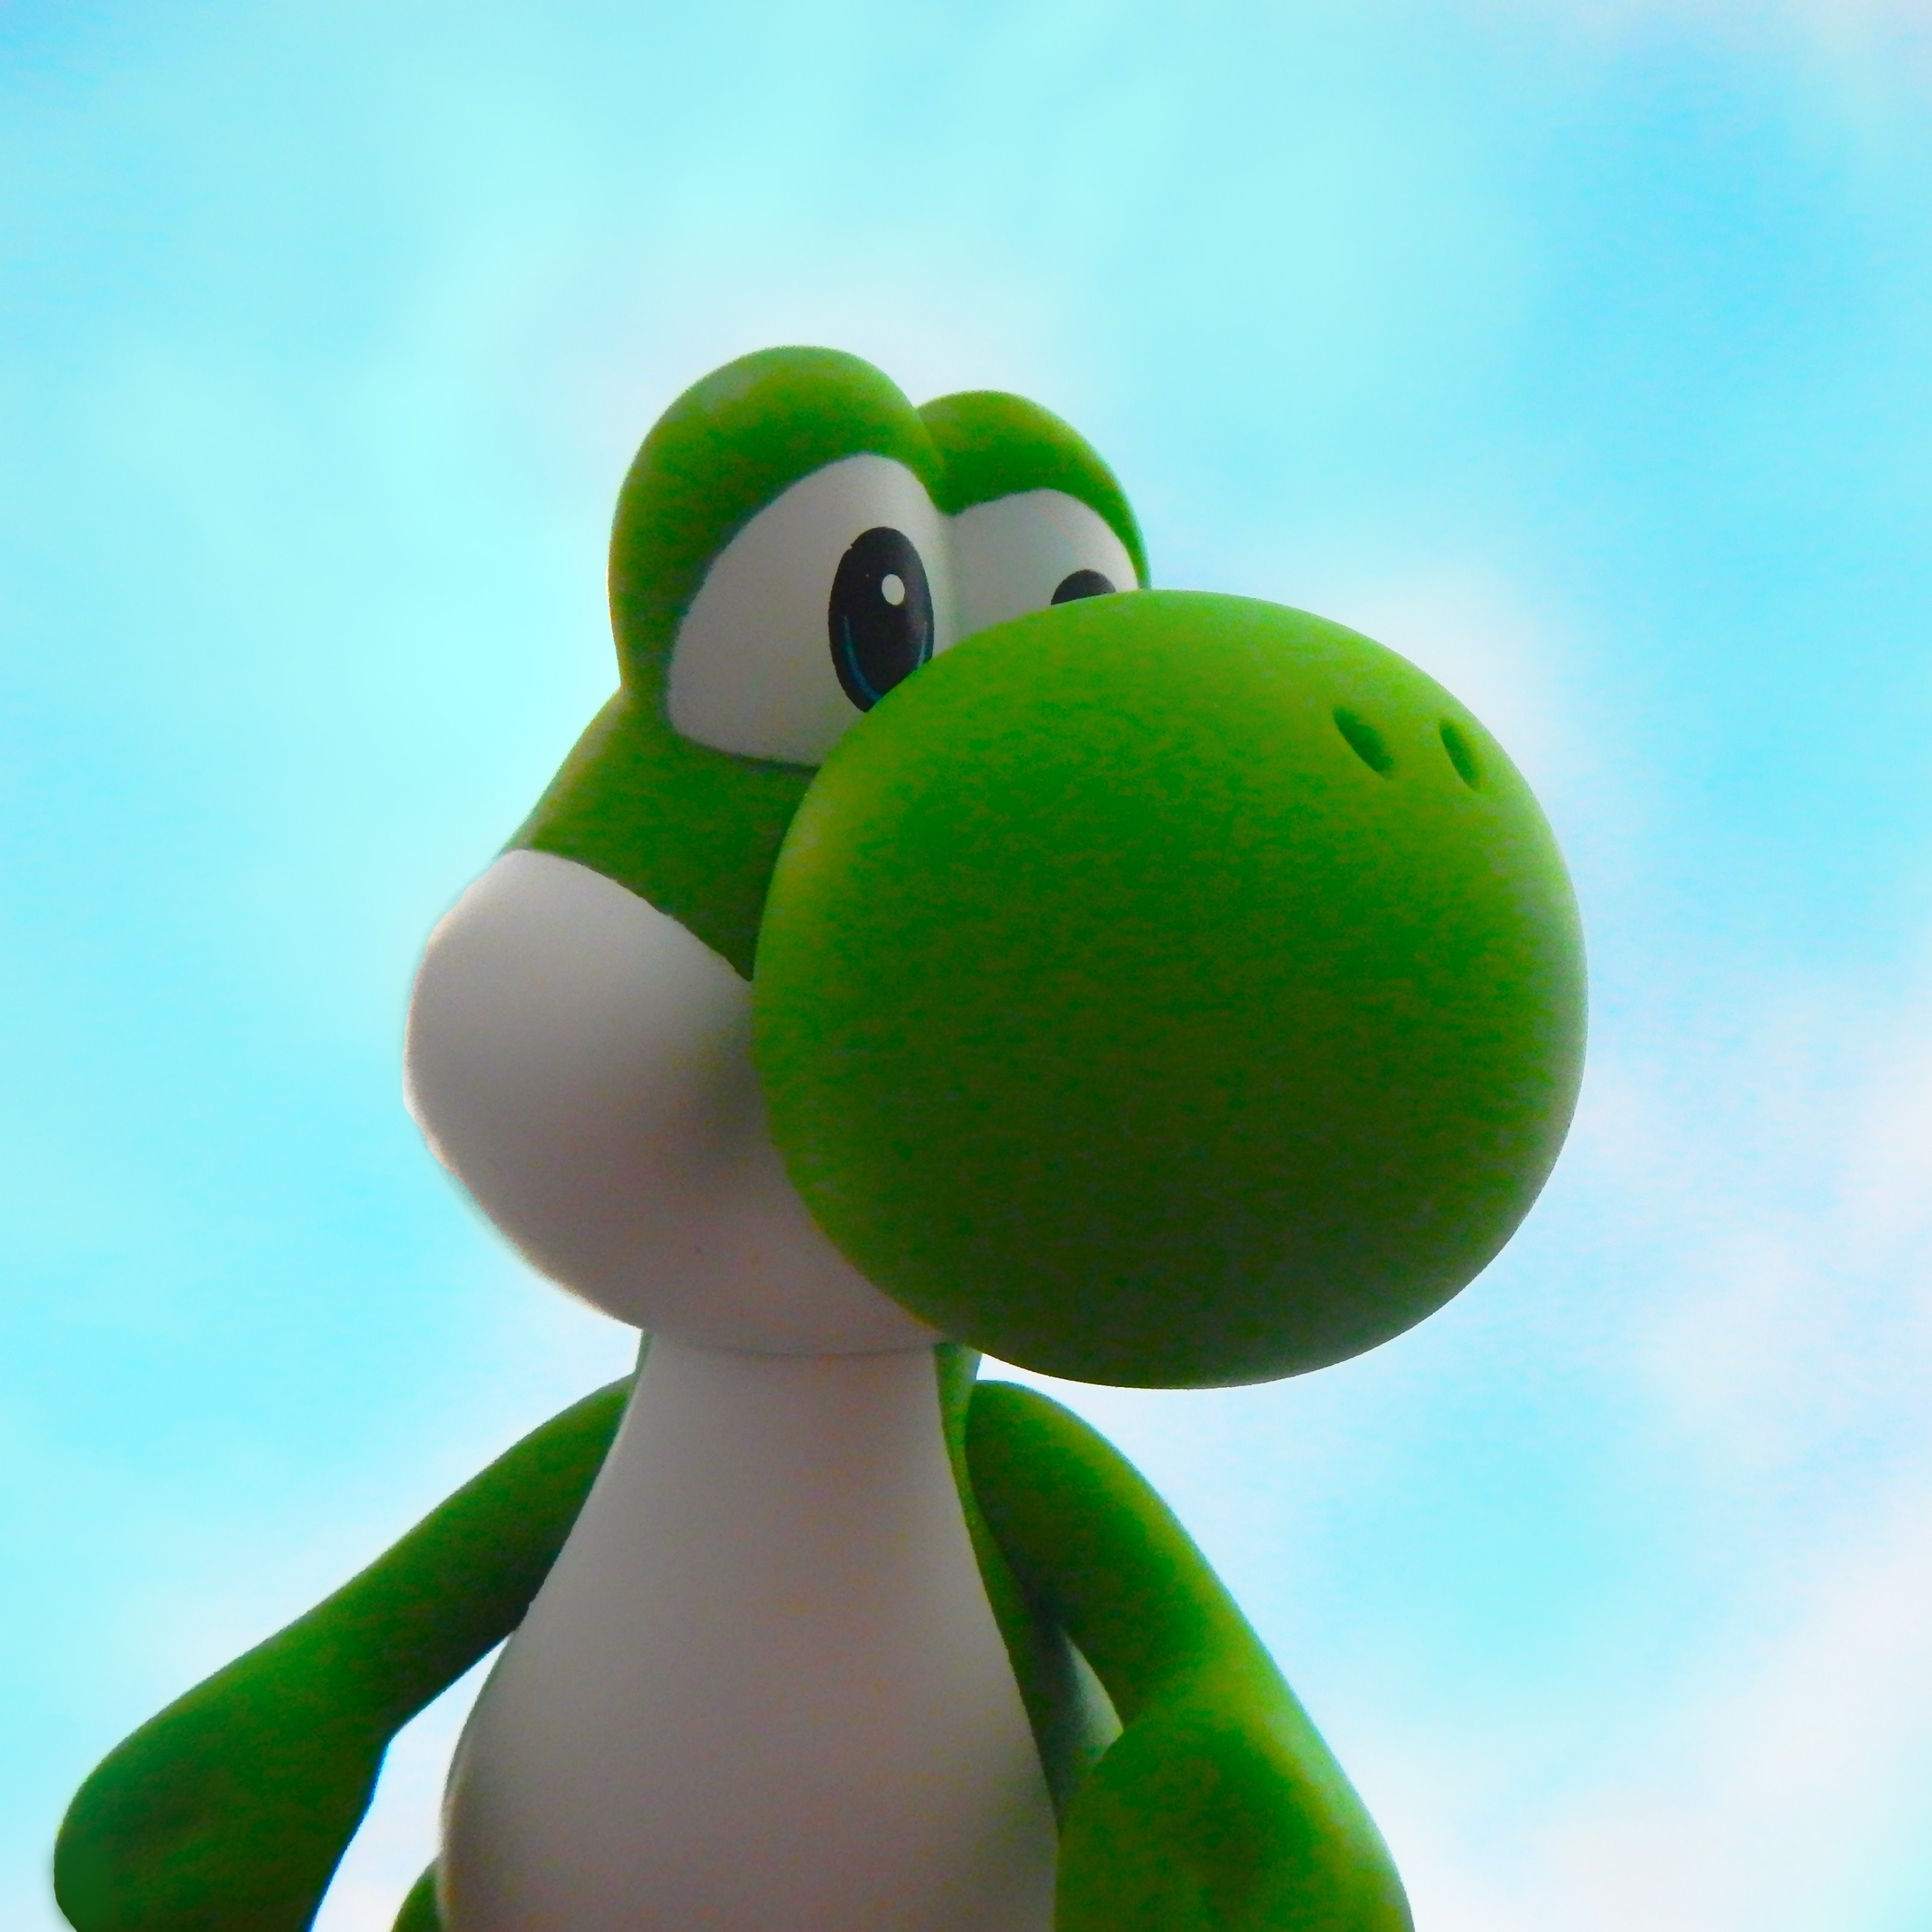 Nintendo Yoshi Mario Bros Game iPad Wallpaper